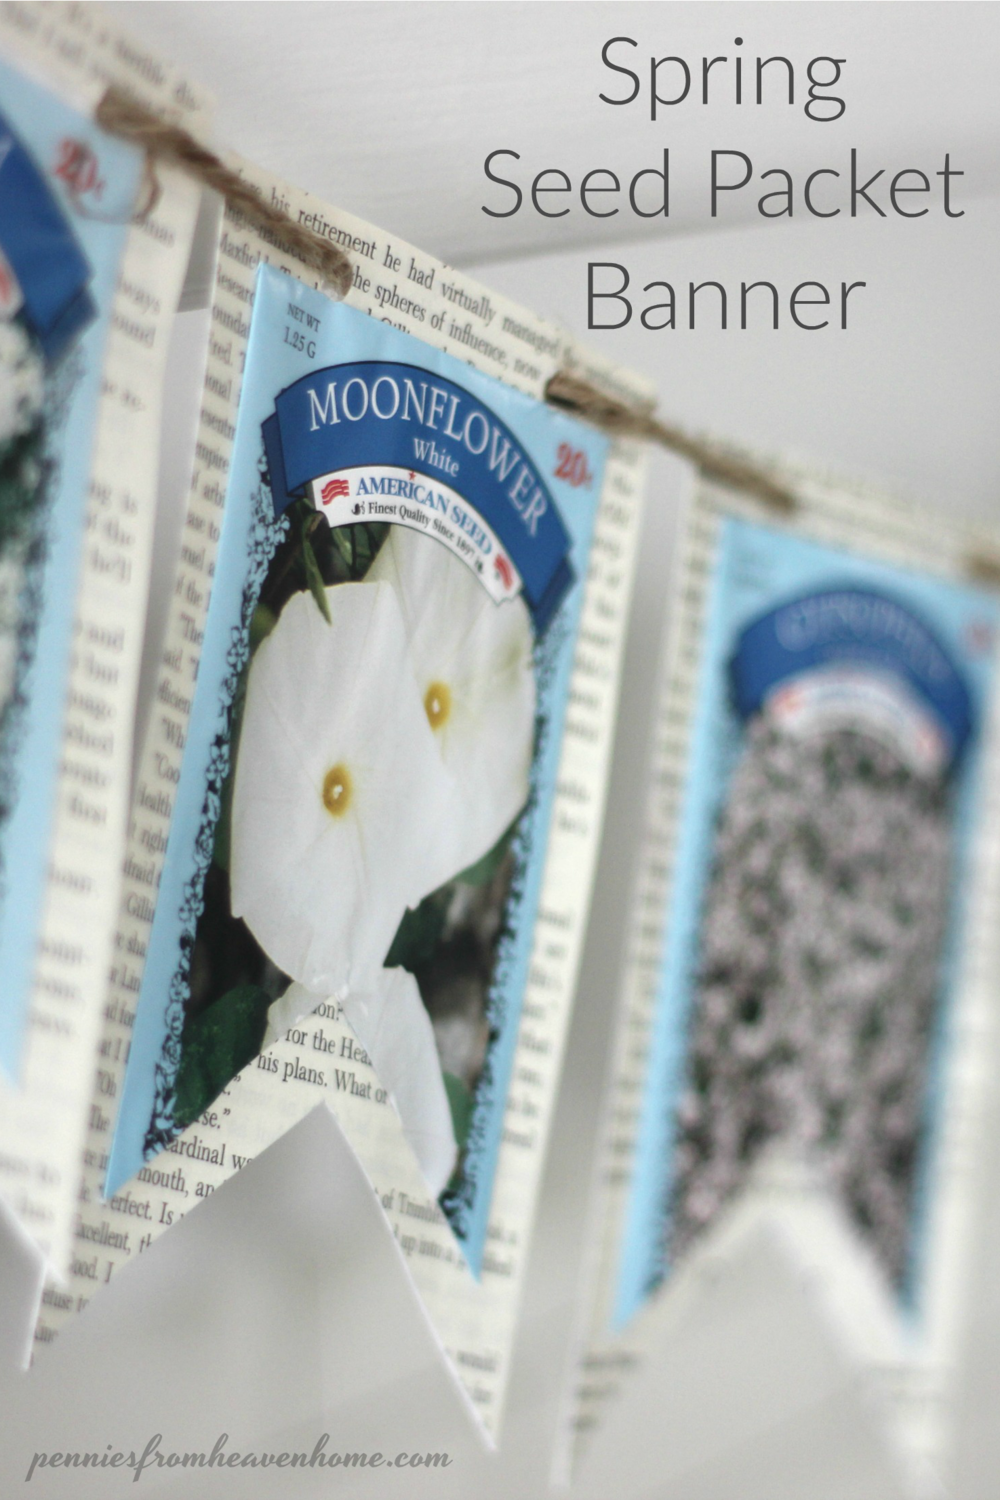 Spring Seed Packet Banner — Pennies From Heaven Home | Garden ...